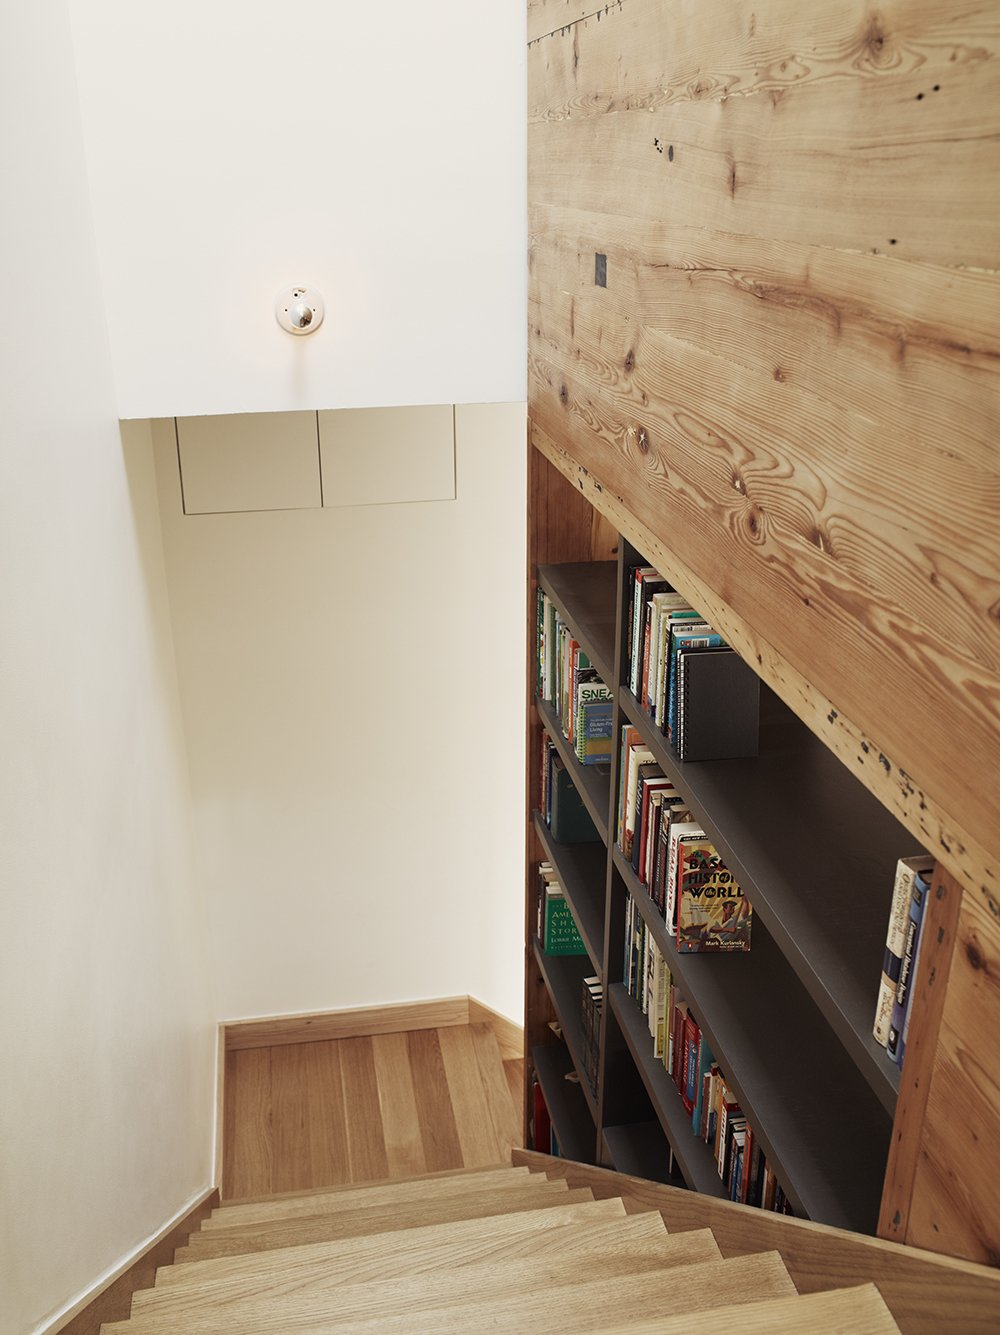 Creating a library along a staircase out of open shelving means that the books can be accessed from both the staircase and the stair hall on the other side.